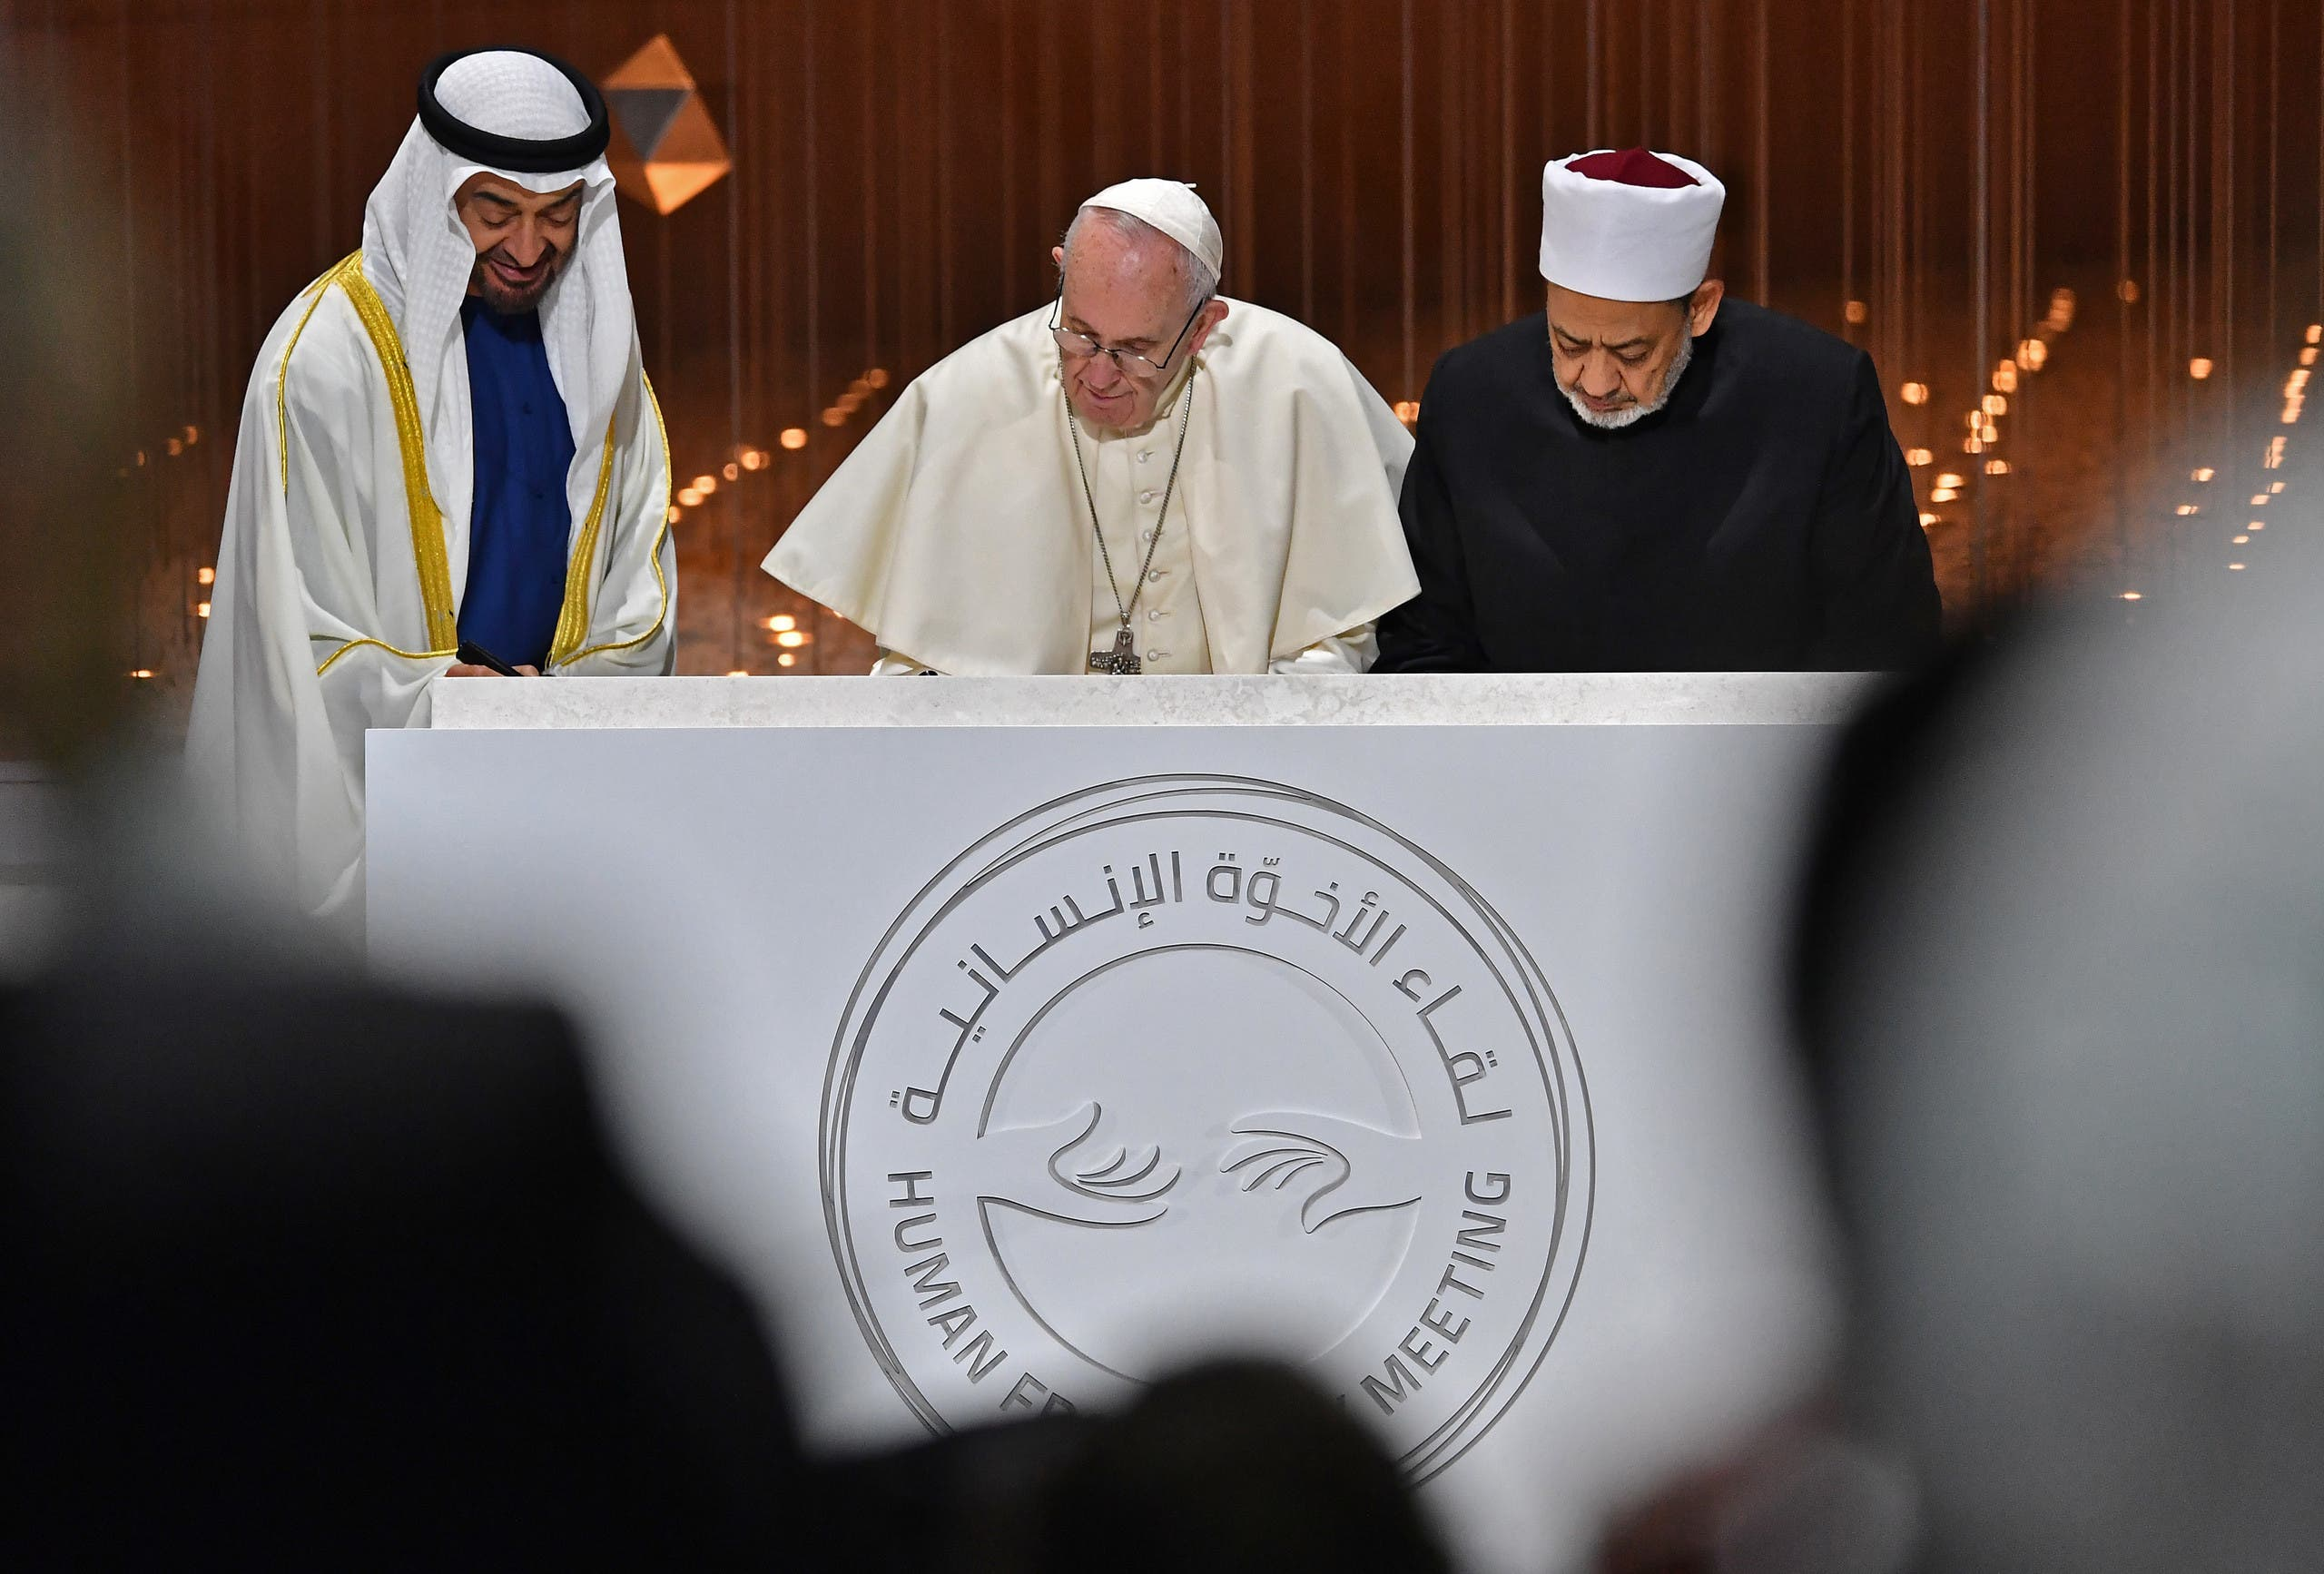 Abu Dhabi's Crown Prince Mohamed bin Zayed Al Nahyan (L) watches as Pope Francis (C) and Egypt's Azhar Grand Imam Sheikh Ahmed al-Tayeb sign documents during the Human Fraternity Meeting in Abu Dhabi on February 4, 2019. (AFP)